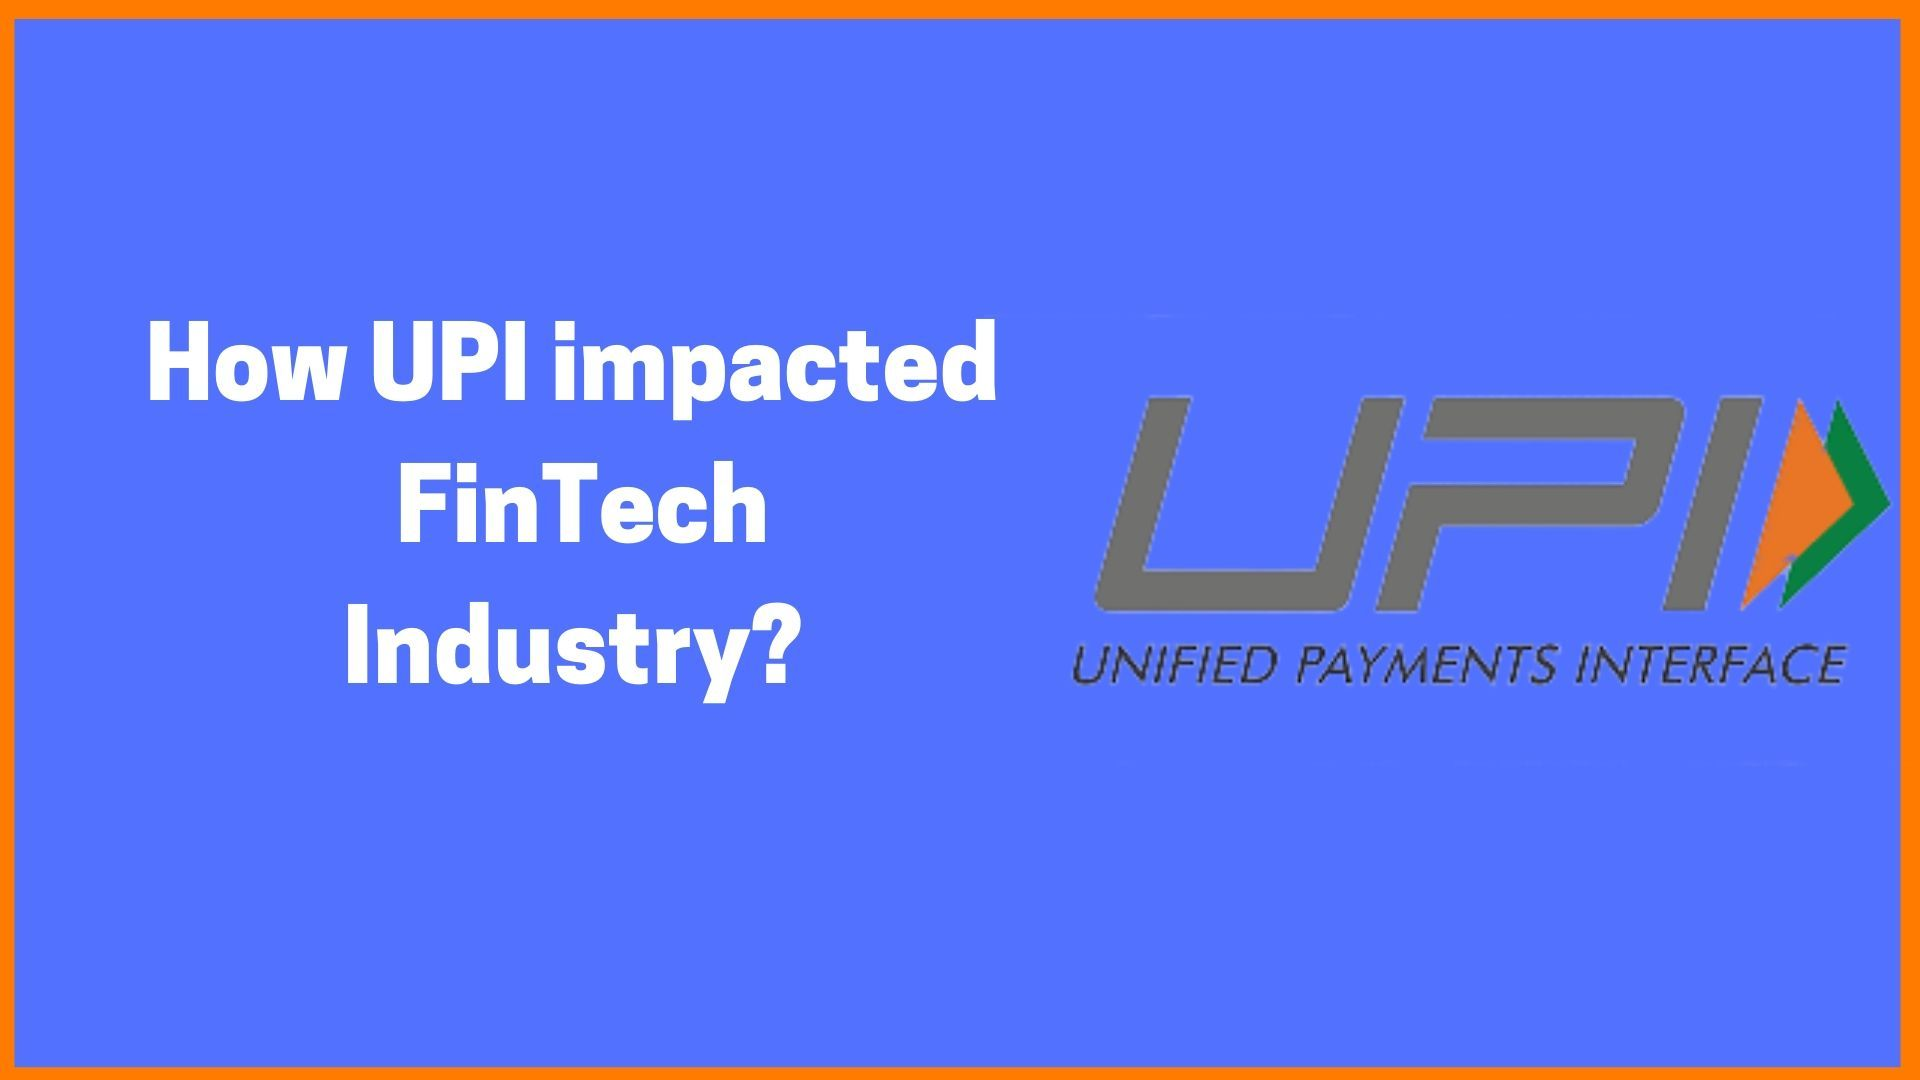 How UPI impacted FinTech Industry?